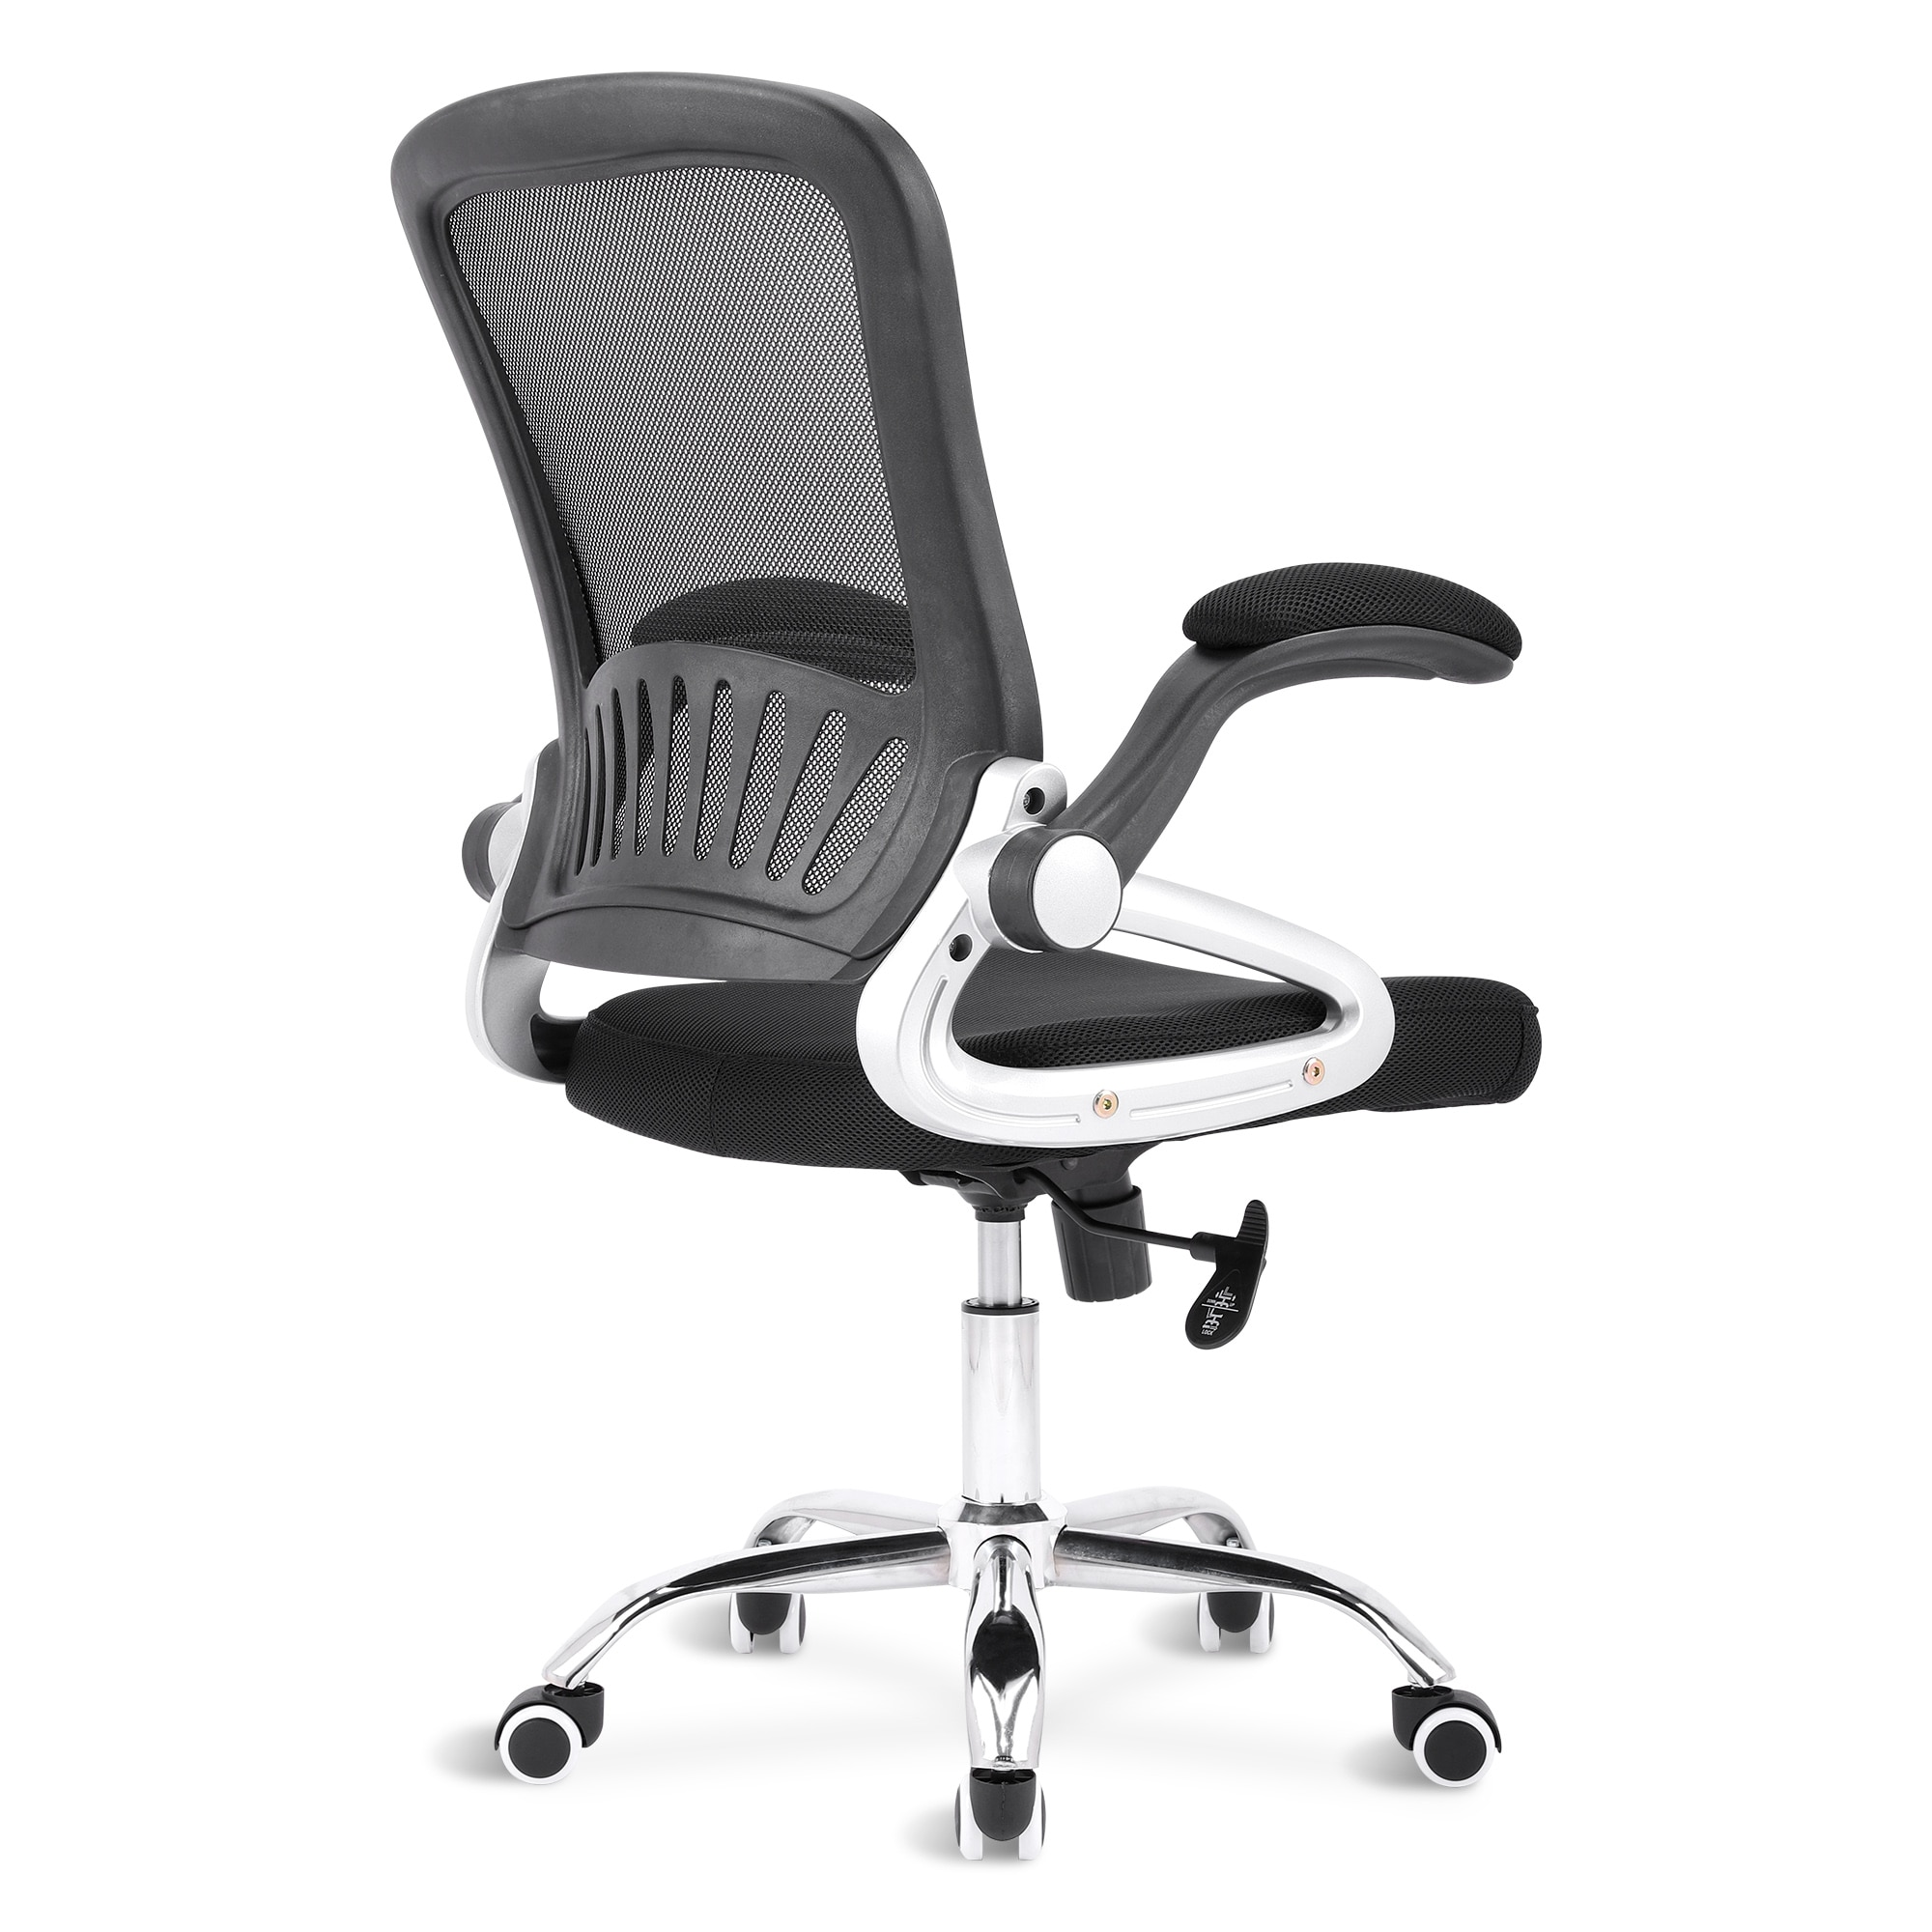 He4bfe080056b43f6b2bfd482da7f9a93M - Sigtua Swivel Office Chair Height-adjustable Desk Chair Breathable PC Chair Comfortable Ergonomic Executive Computer Chair Black